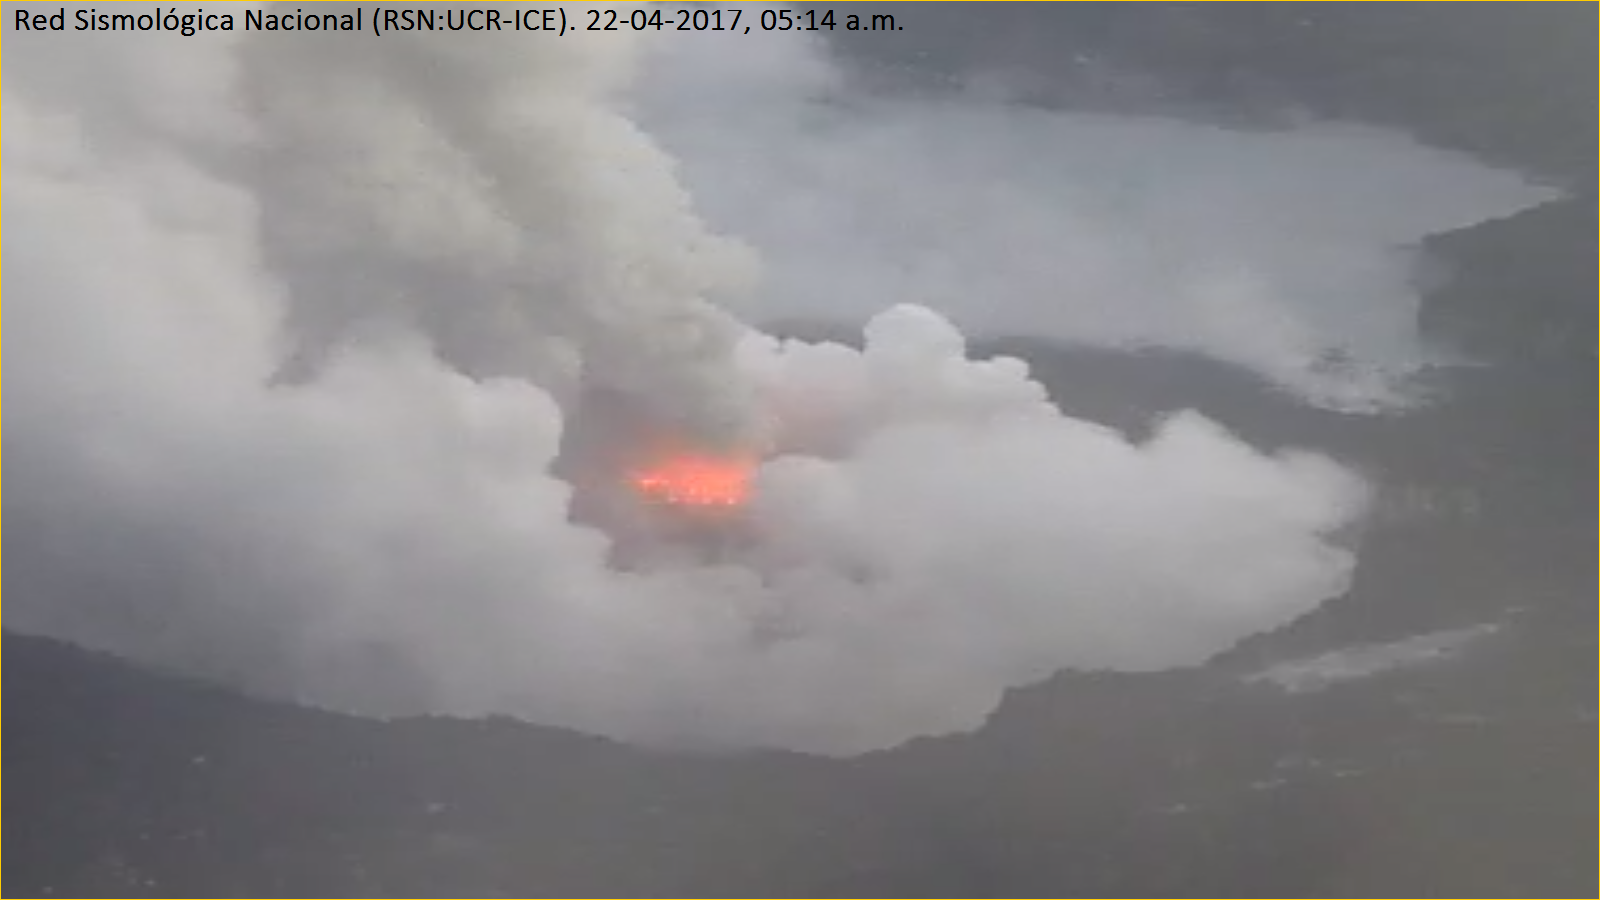 Poas - 22.04.2017 / 5h14 loc. - the amplification provided by the images of the webcam allows to see the point of emission of the eruptions - RSN